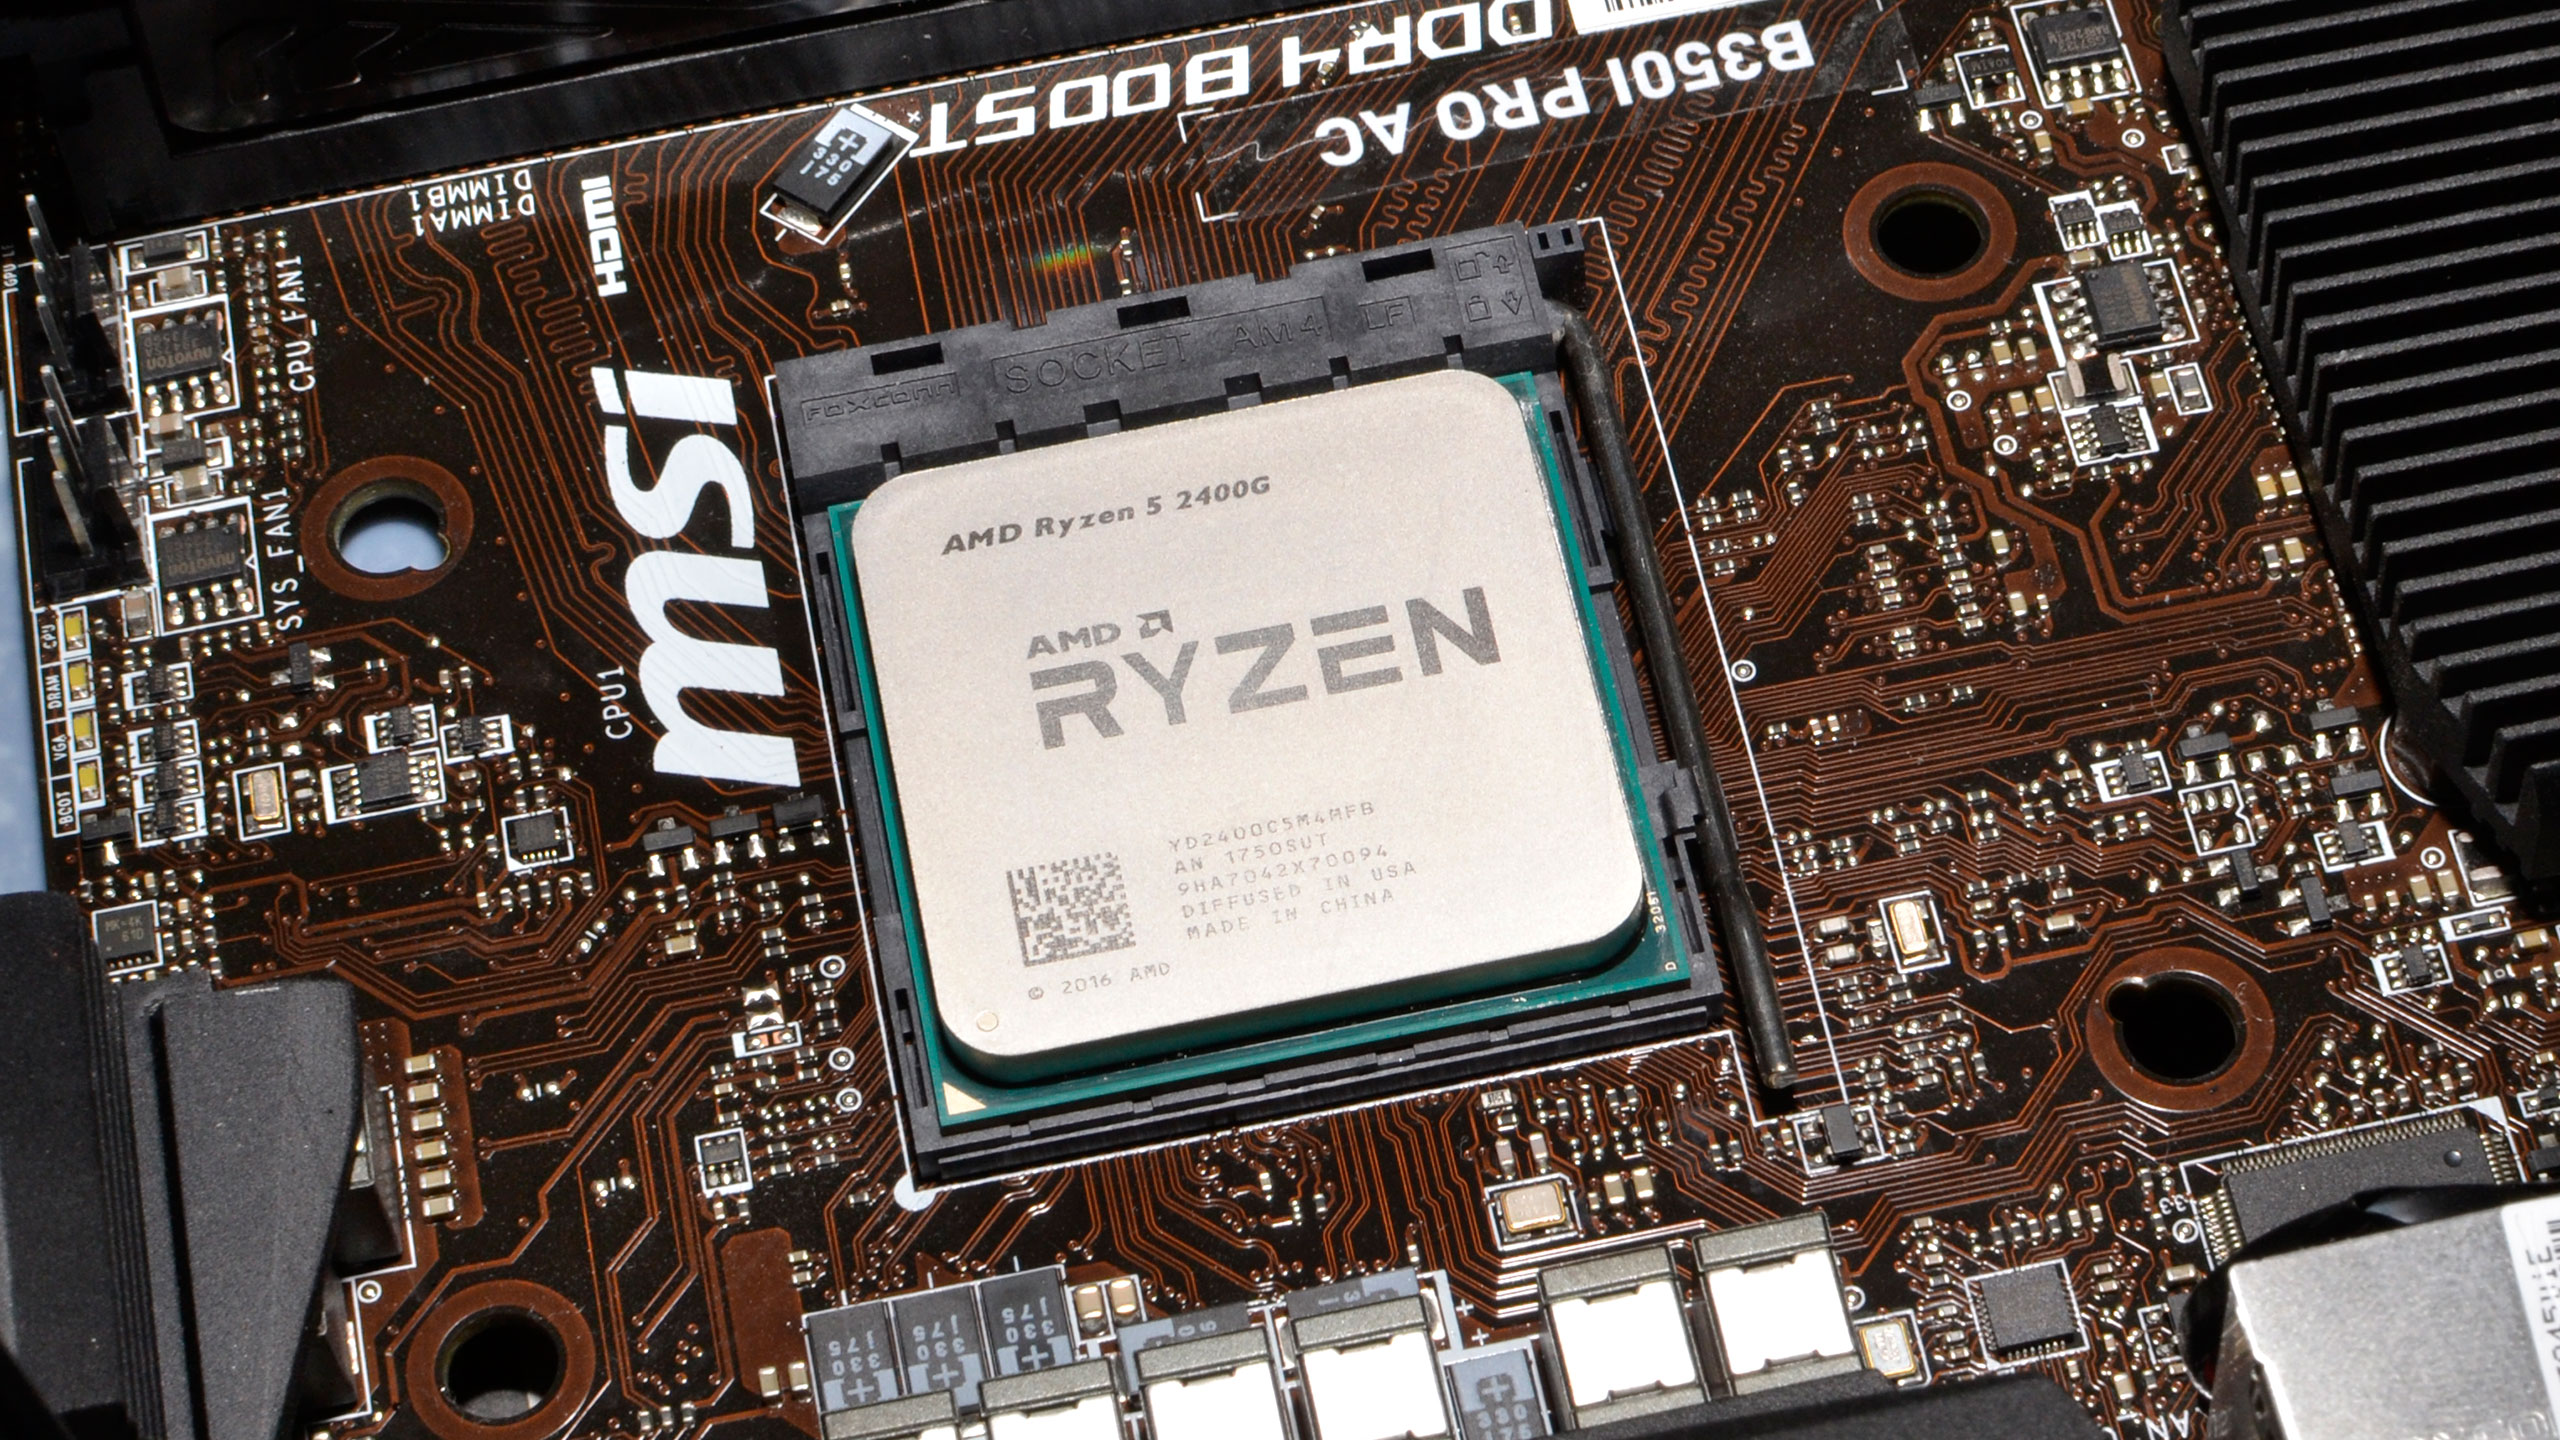 AMD will lend you an older processor to update your BIOS to